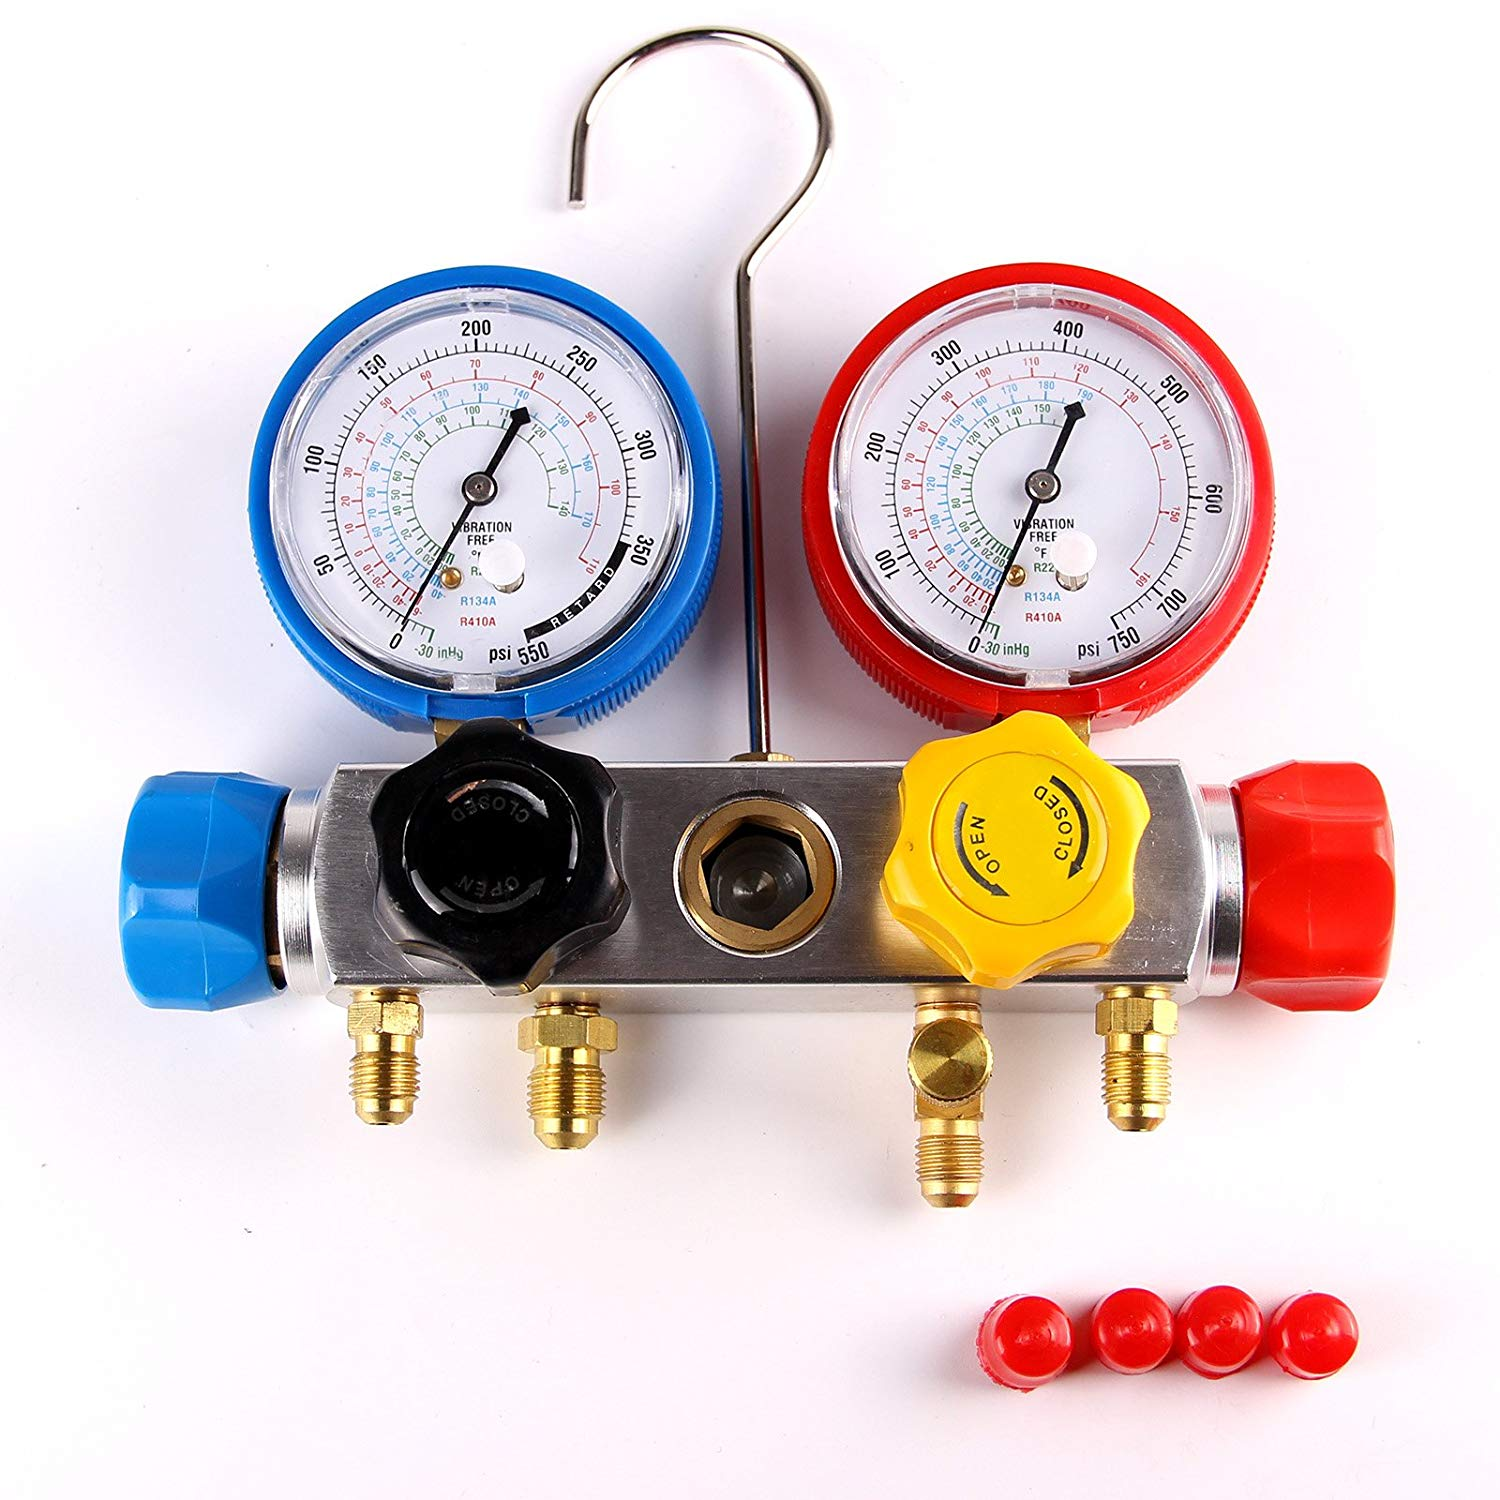 AC Manifold Gauge Set 4 Way R410a R22 R134a with Hoses Coupler Adapters by  BlueStars